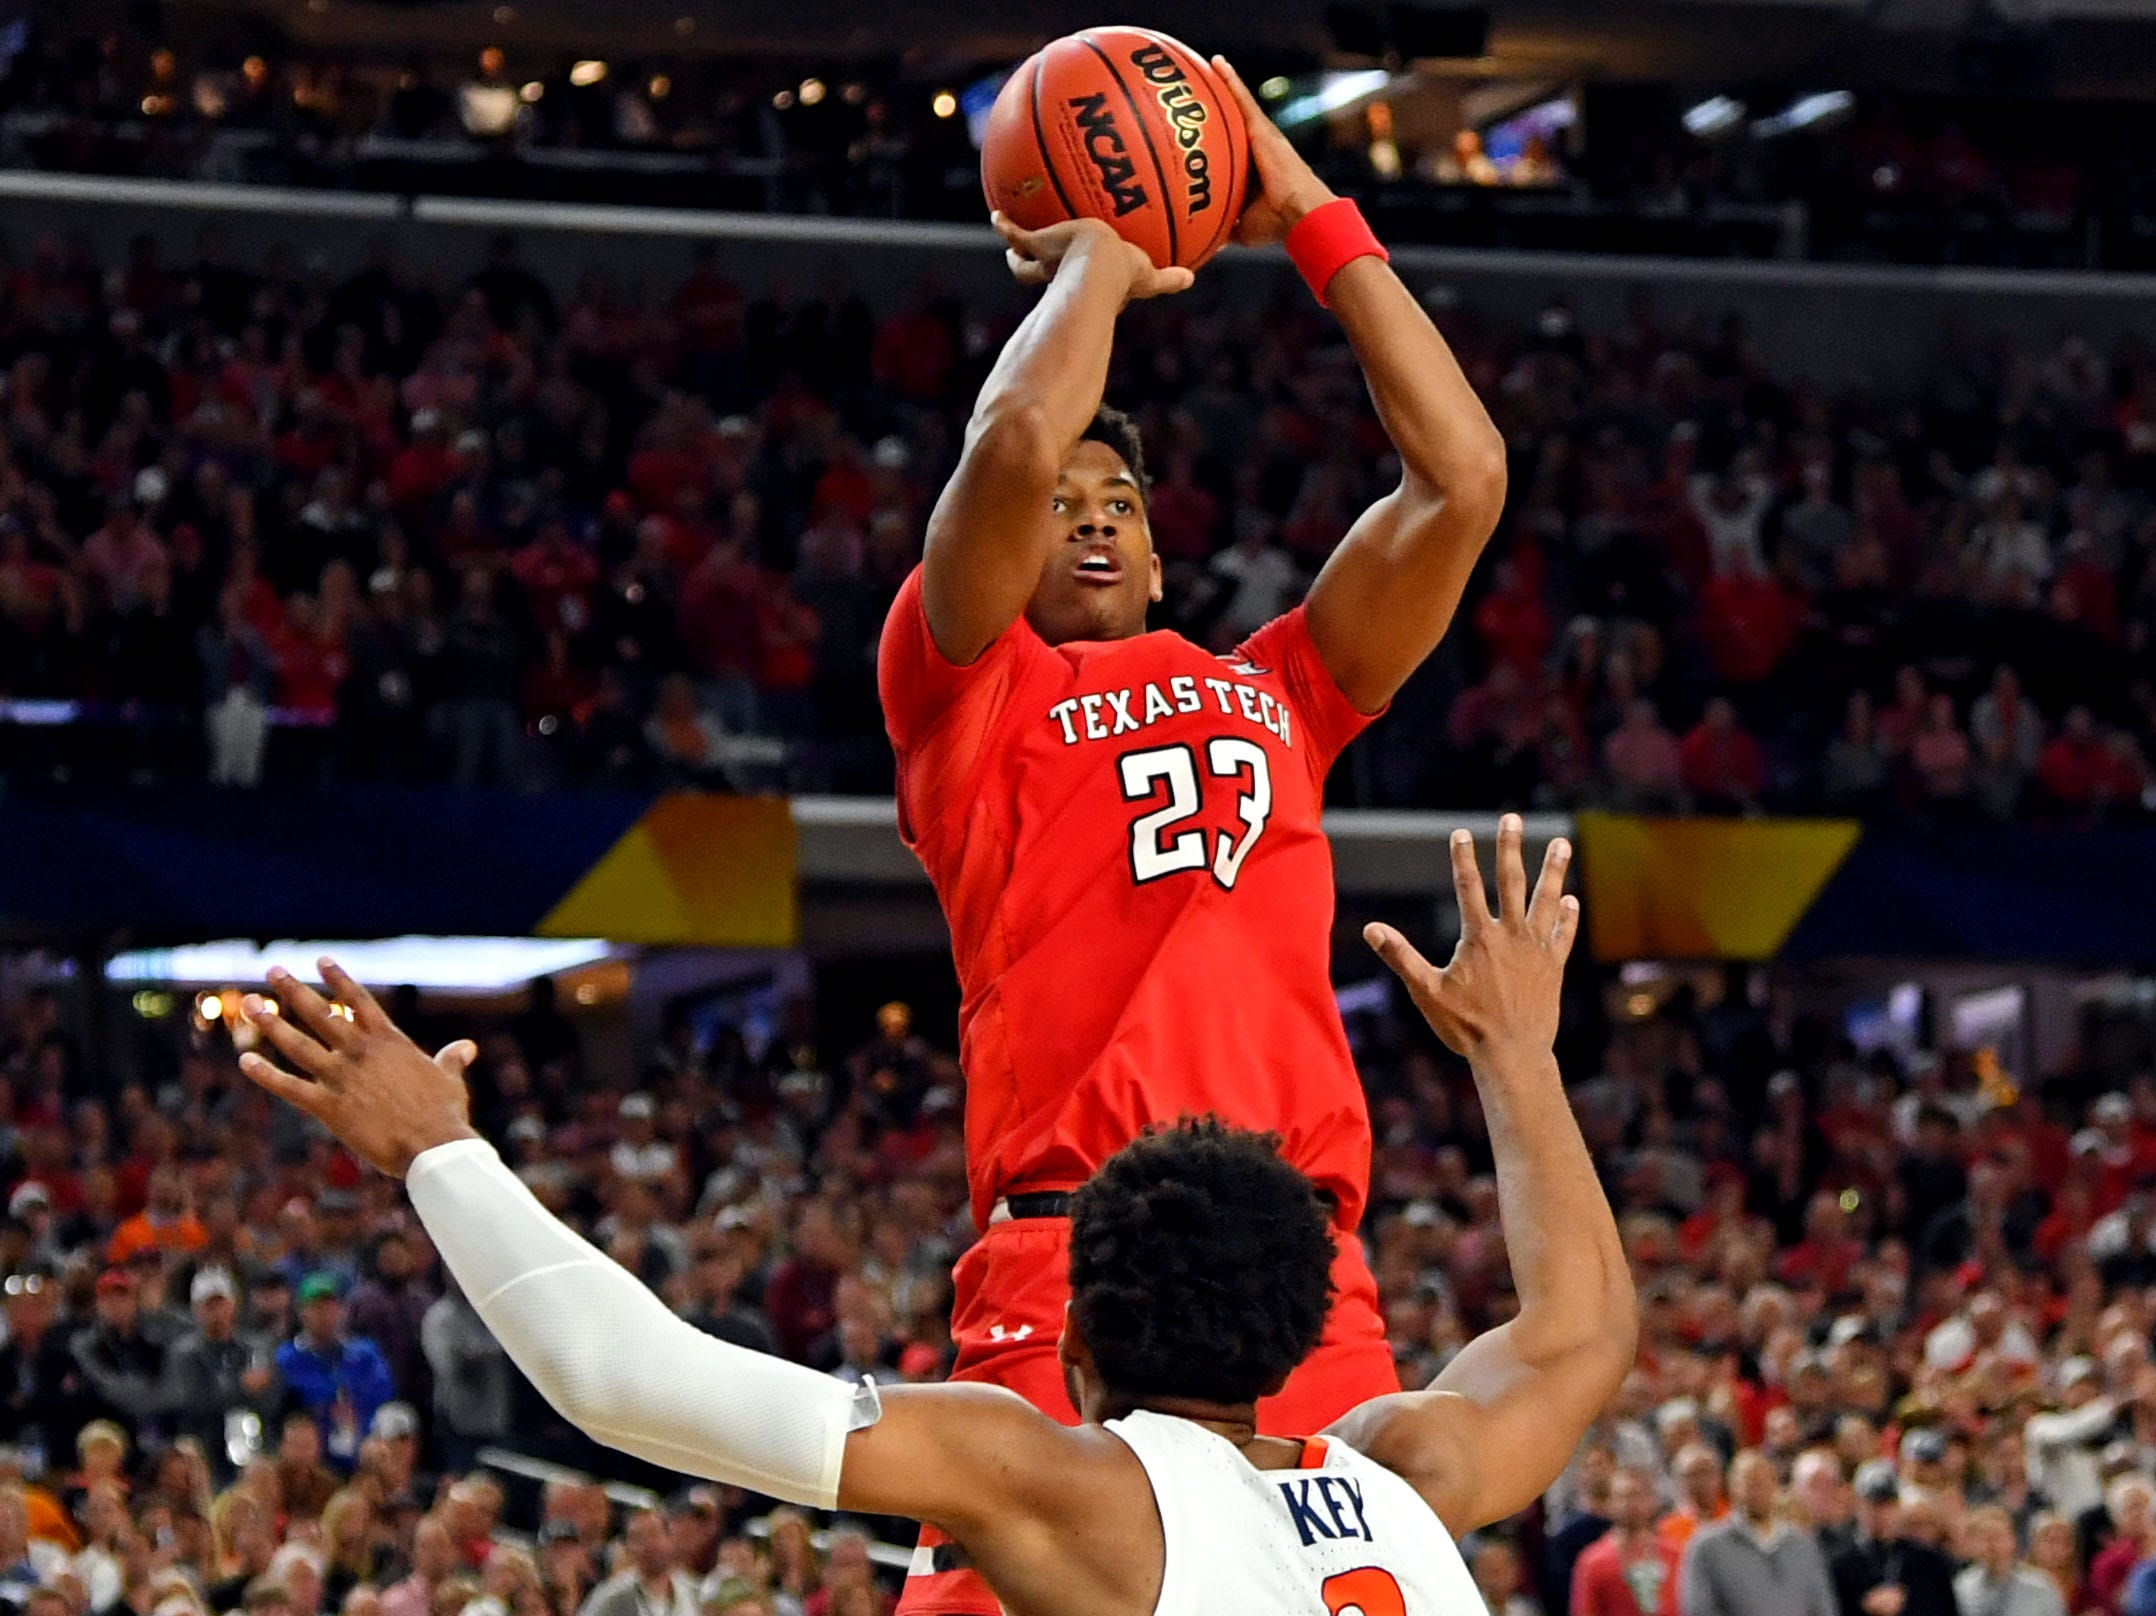 Apr 8, 2019; Minneapolis, MN, USA; Texas Tech Red Raiders guard Jarrett Culver (23) shoots the ball against Virginia Cavaliers guard Braxton Key (2) during overtime in the championship game of the 2019 men's Final Four at US Bank Stadium. Mandatory Credit: Bob Donnan-USA TODAY Sports